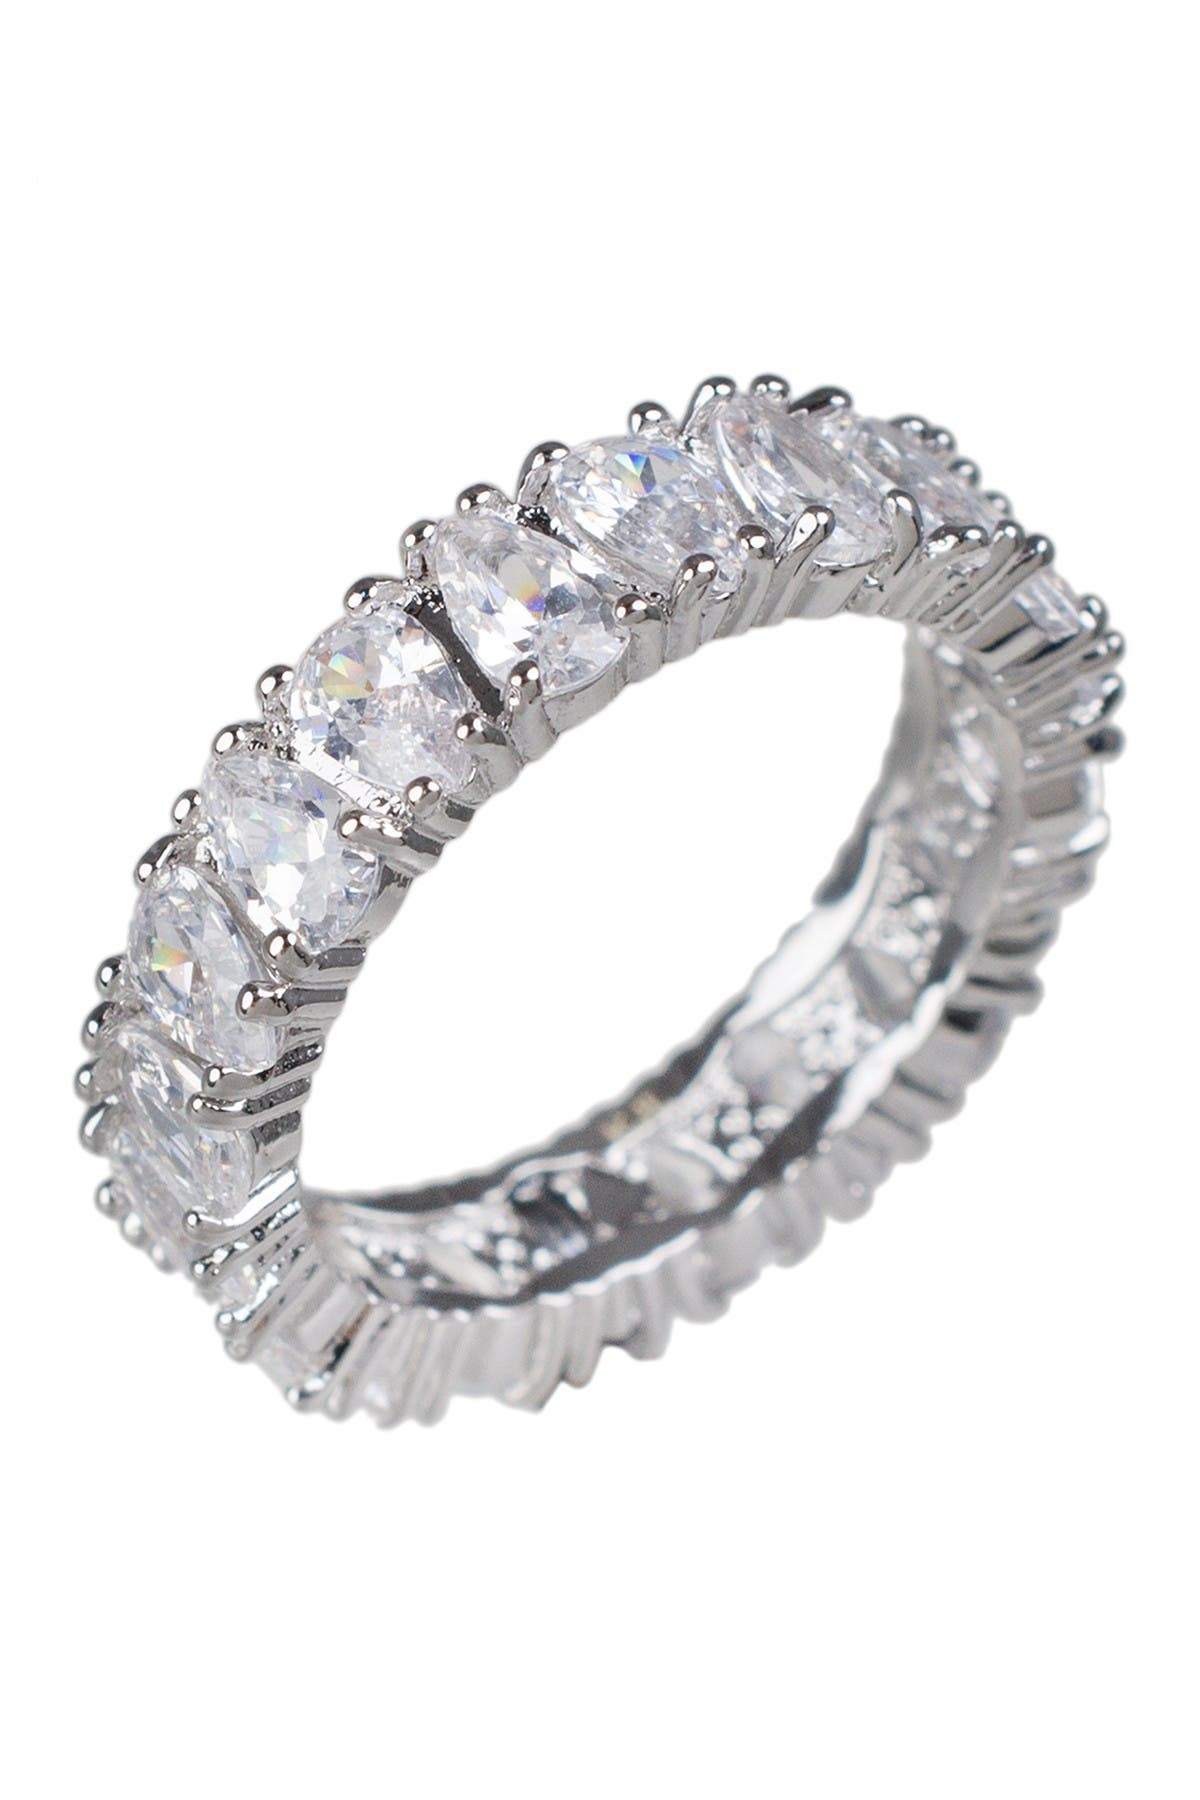 Image of CZ By Kenneth Jay Lane Rhodium Plated Alternating Pear Cut CZ Band Ring